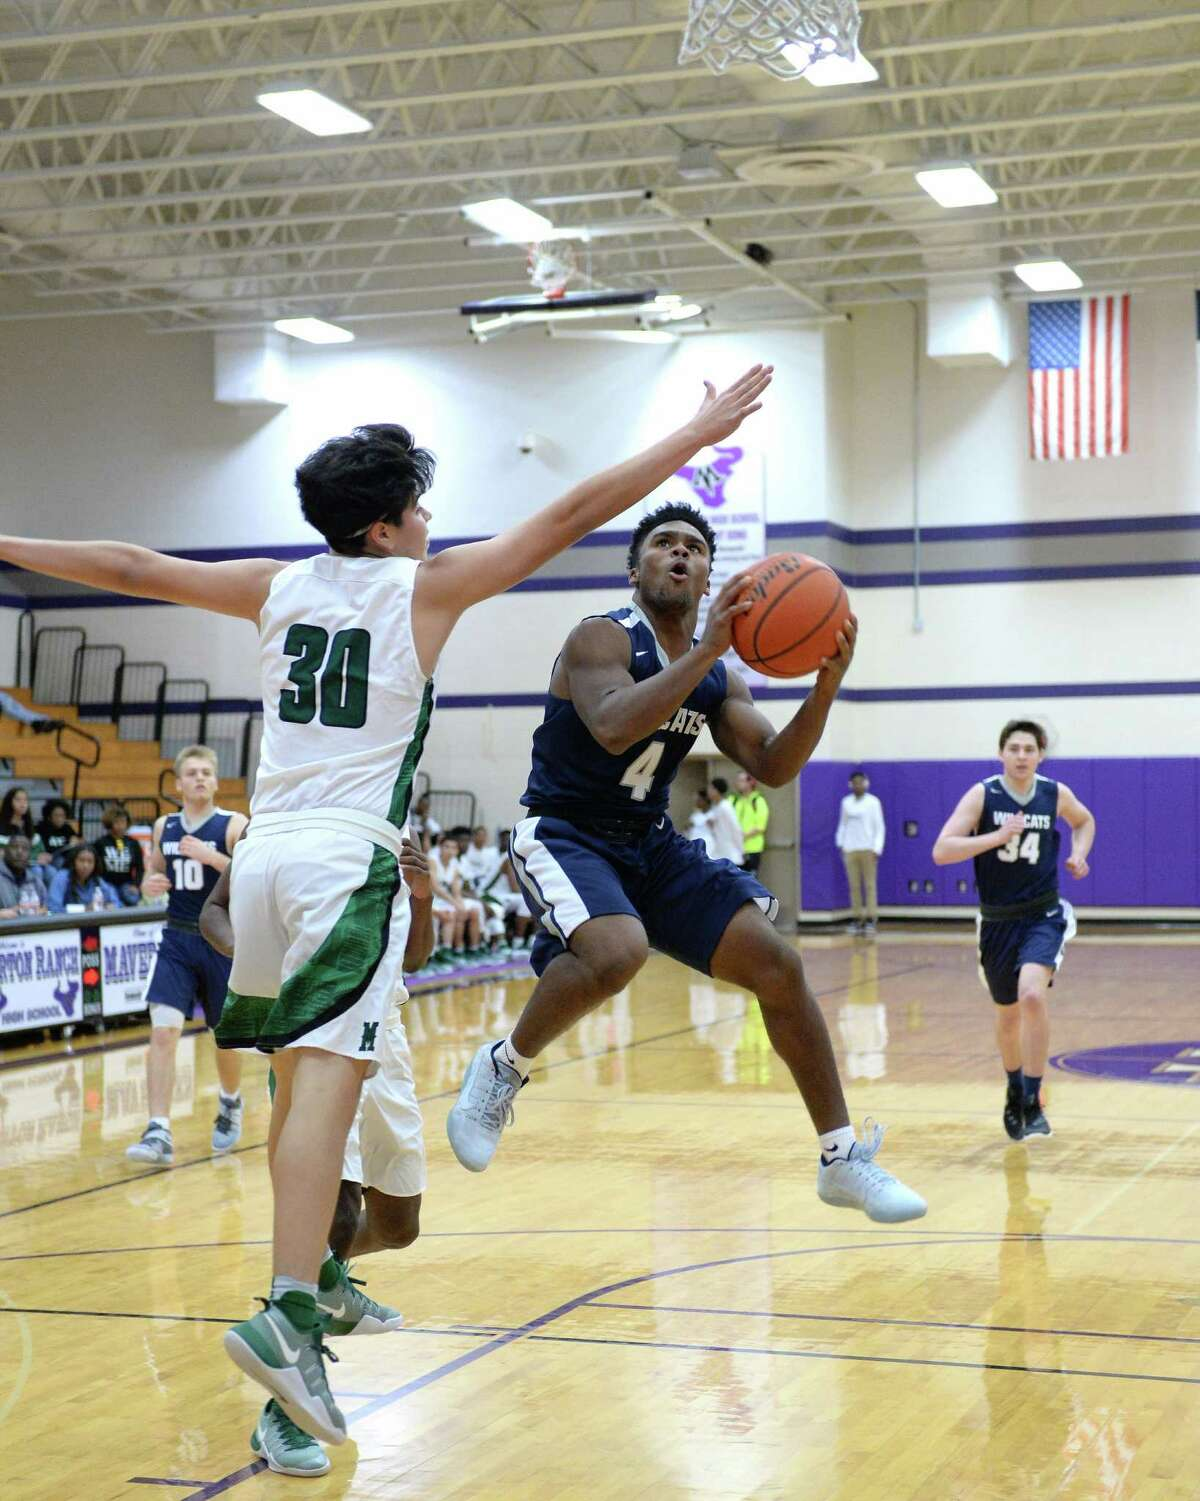 Jackson Key (4) of Tomball Memorial drives to the hoop in the second half of a boys basketball game between the Mayde Creek Rams and Tomball Memorial Wildcats during the Katy ISD-Phillips 66 Tournament on Thursday December 1, 2016 at Morton Ranch, Katy, TX.